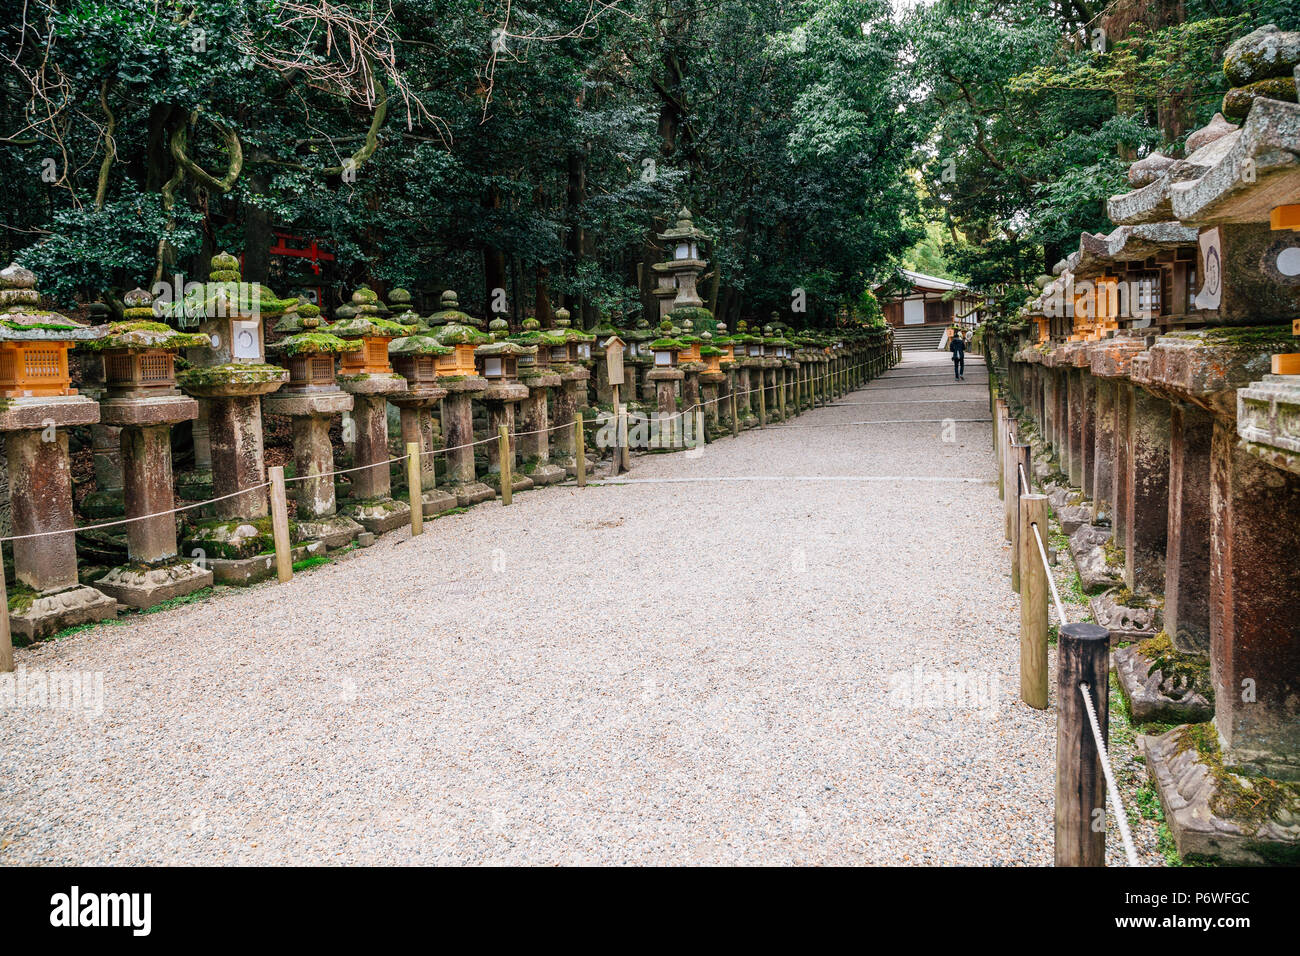 Japanese traditional stone lanterns and forest road in Nara, Japan - Stock Image